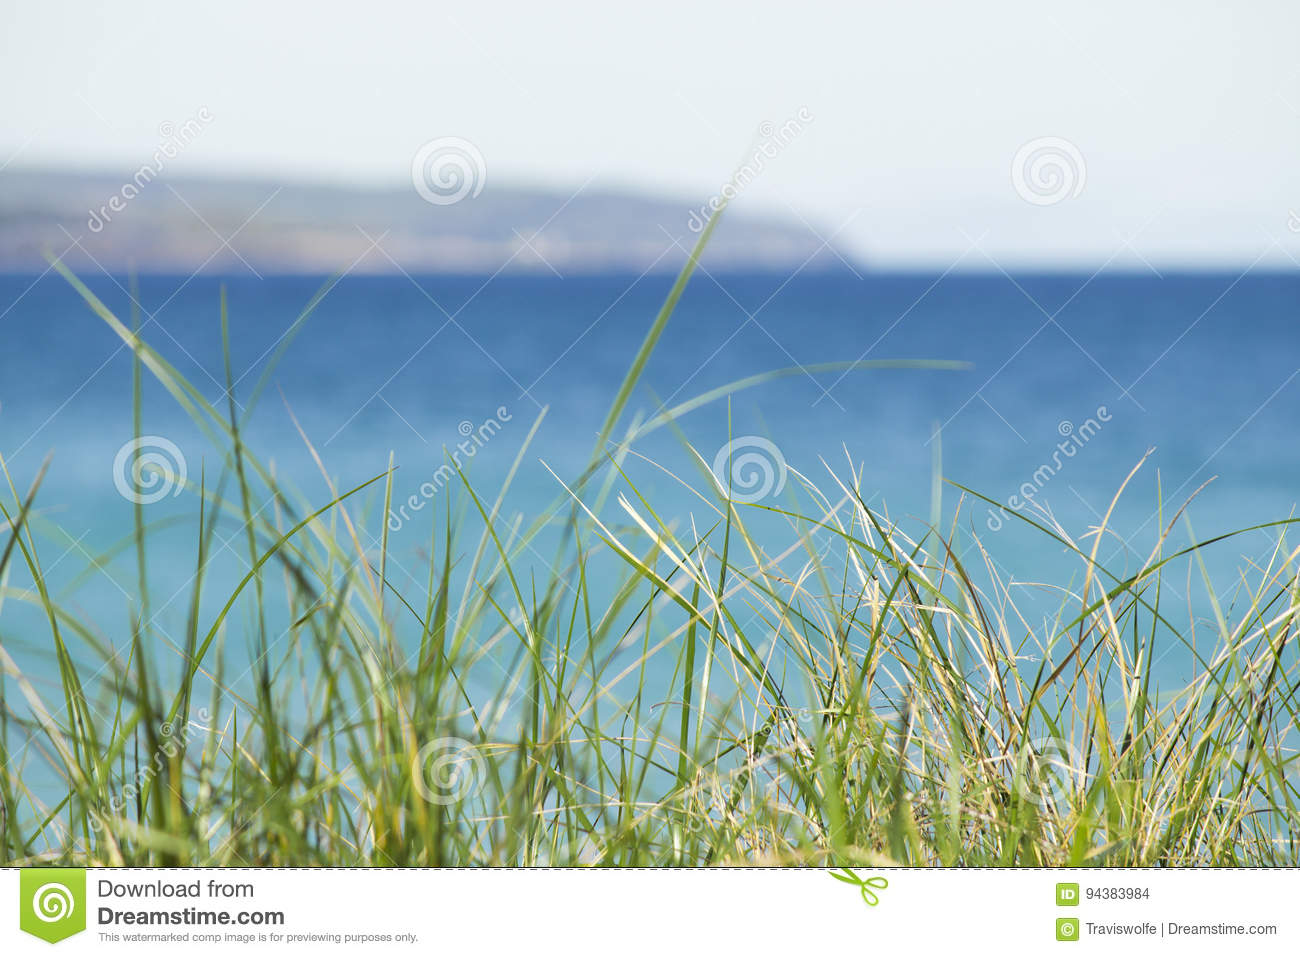 Tropical michigan waters in aqua blue color with beach dune grass emotional dramatic dream concept. Copyspace.